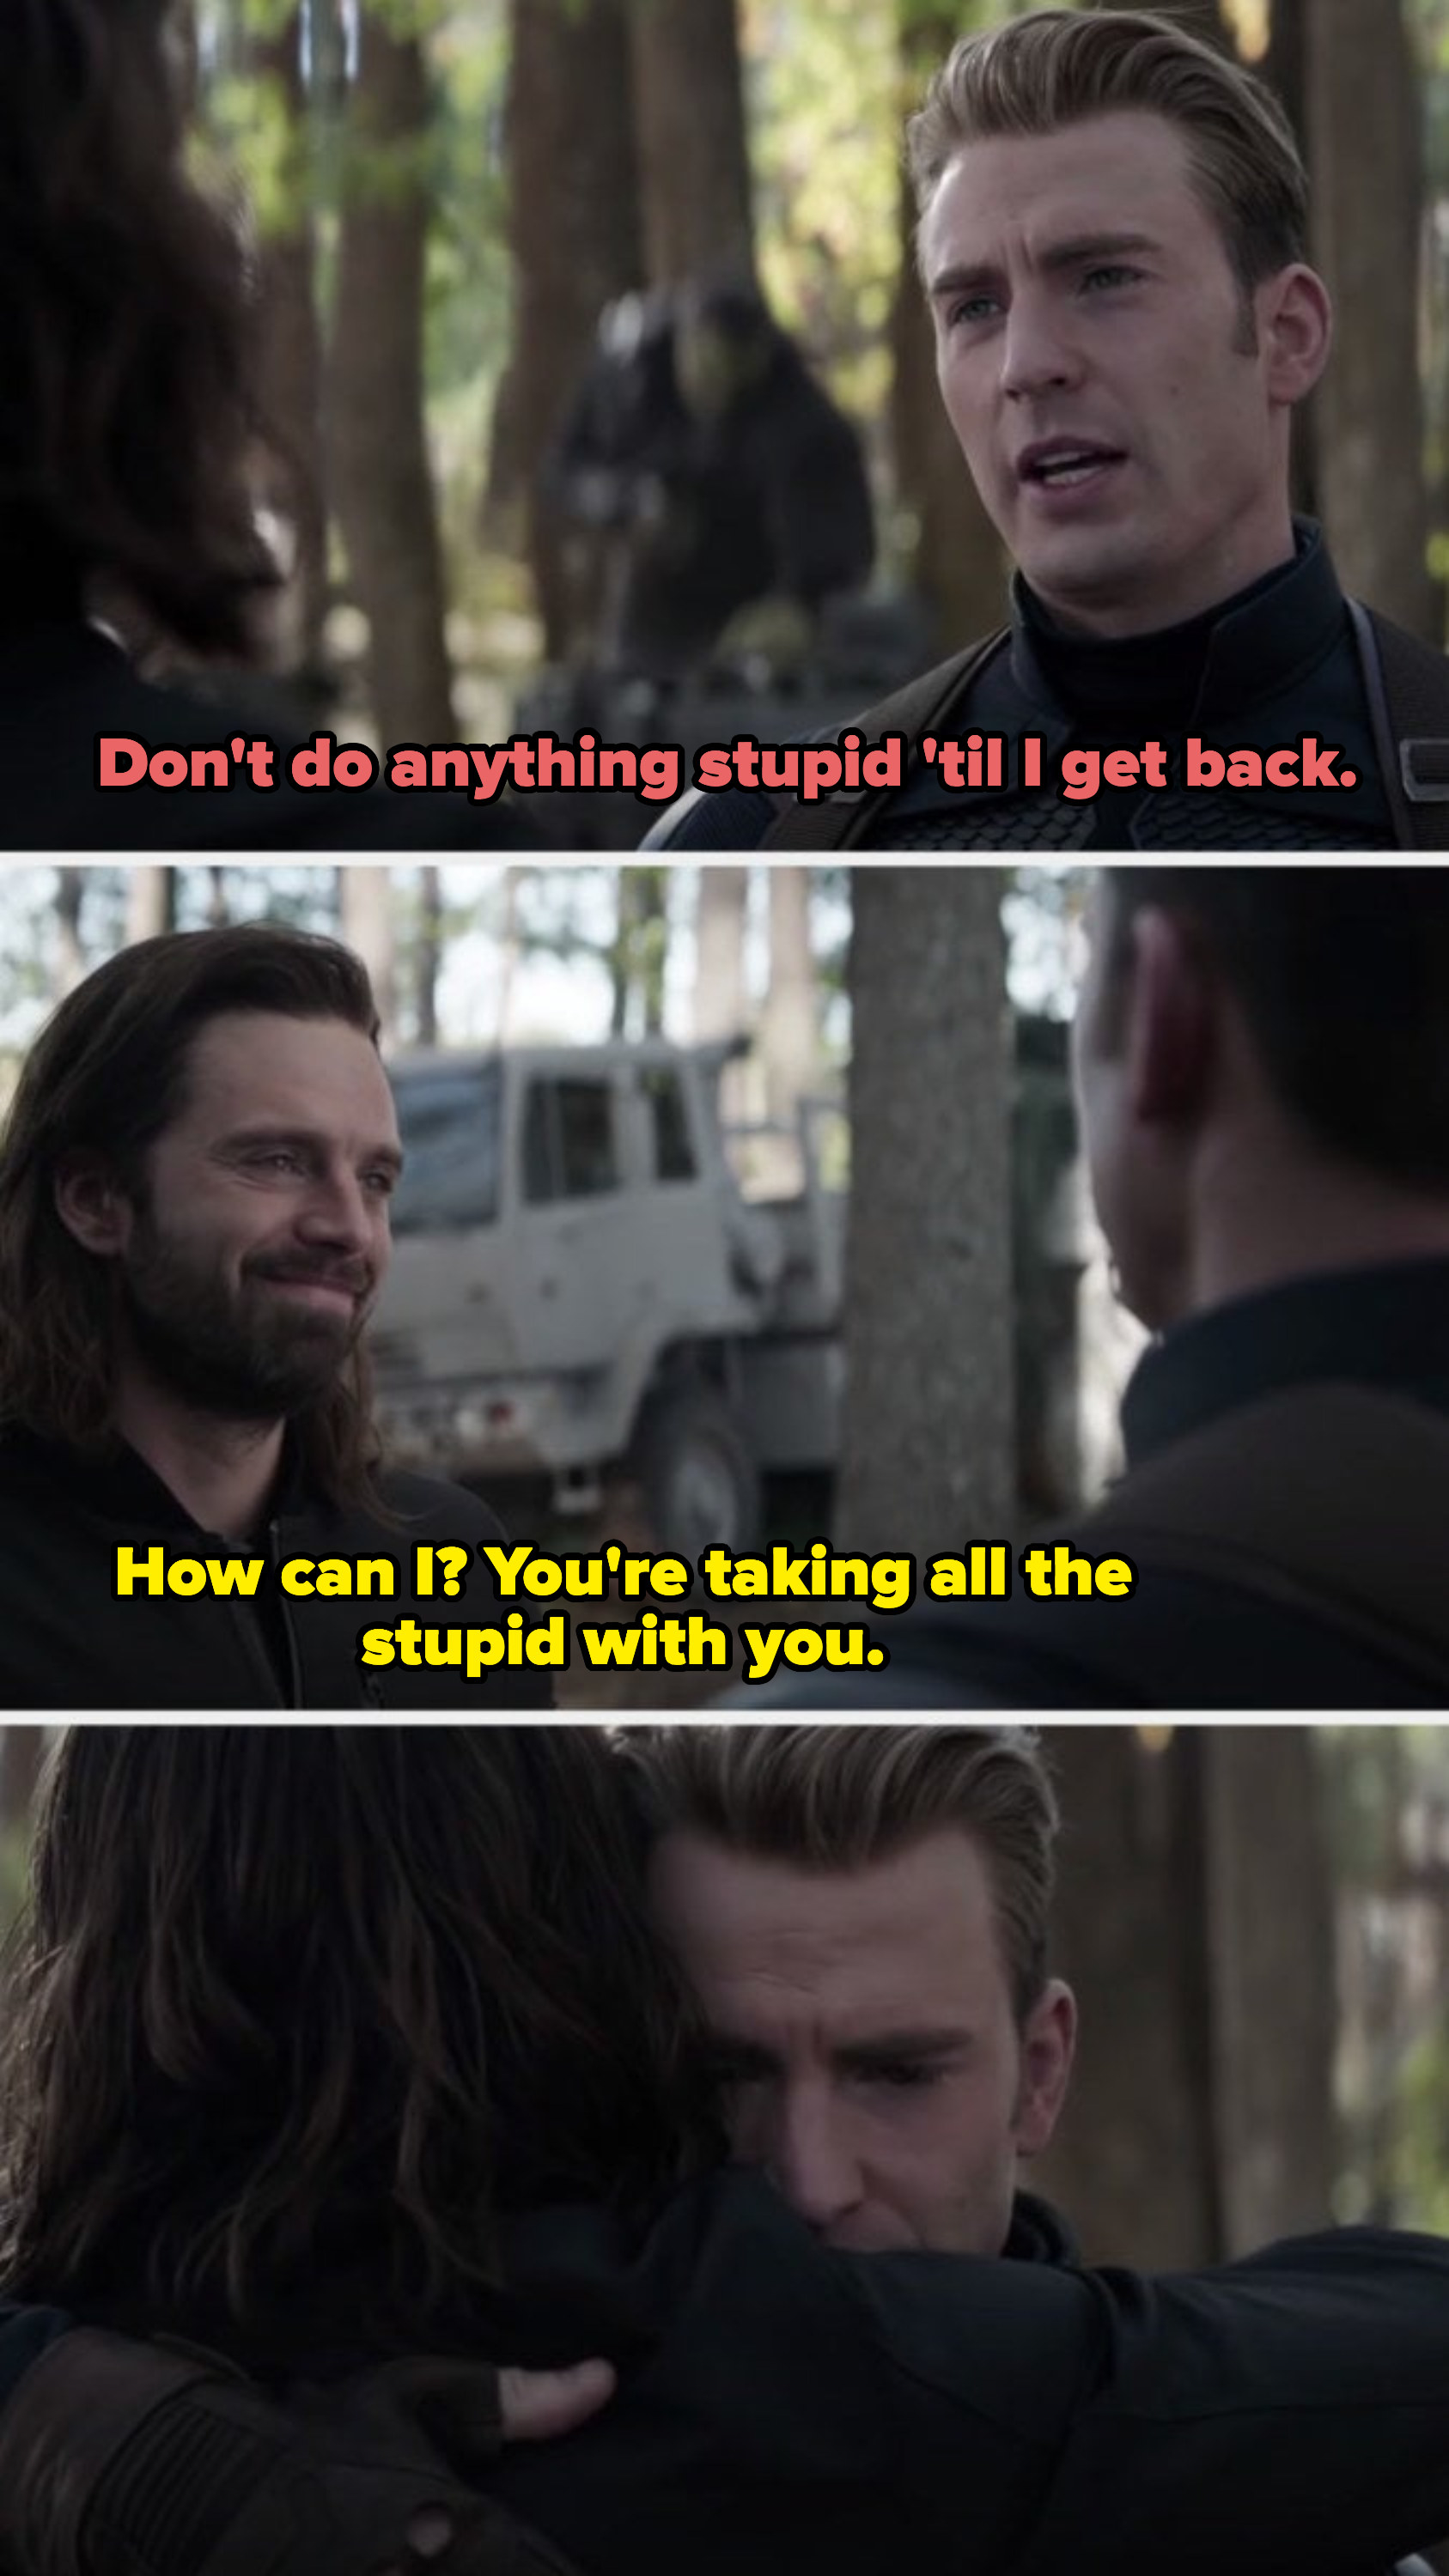 The same dialogue as the previous scene, but Steve is telling Bucky not to do anything stupid